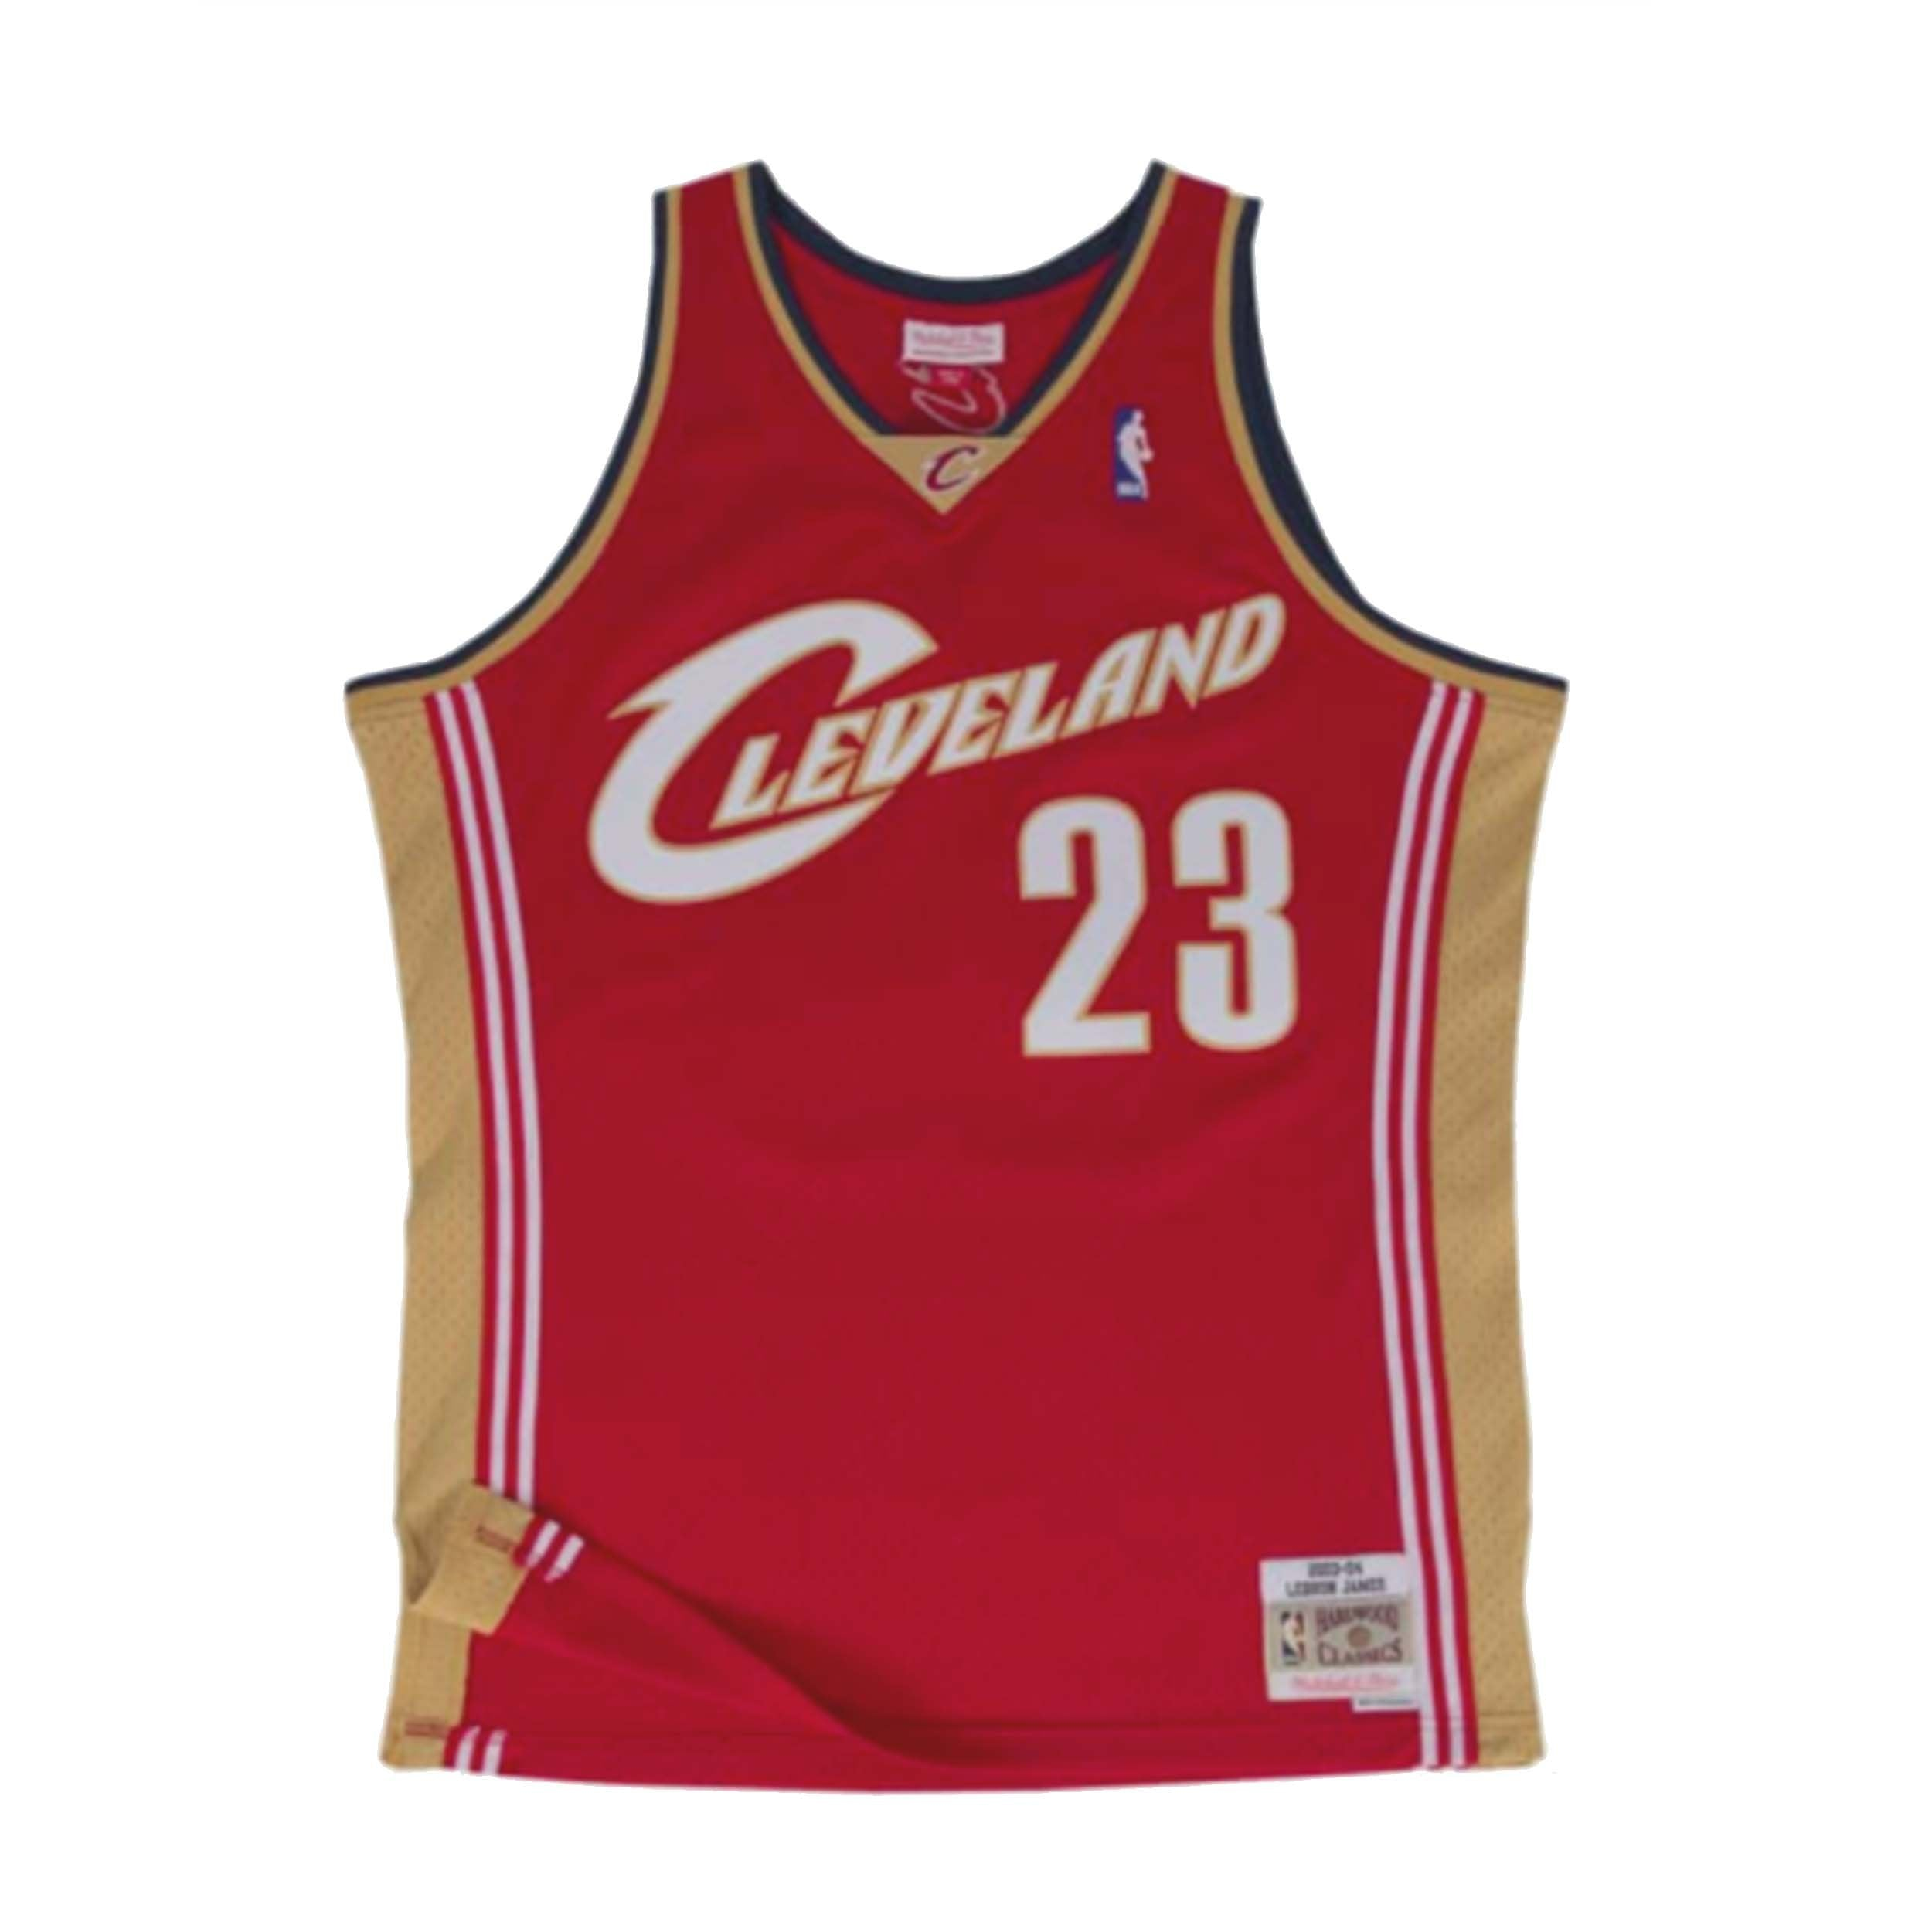 competitive price c28fd 424f1 Mitchell & Ness LeBron James Swingman Jersey Cleveland Cavaliers Maroon